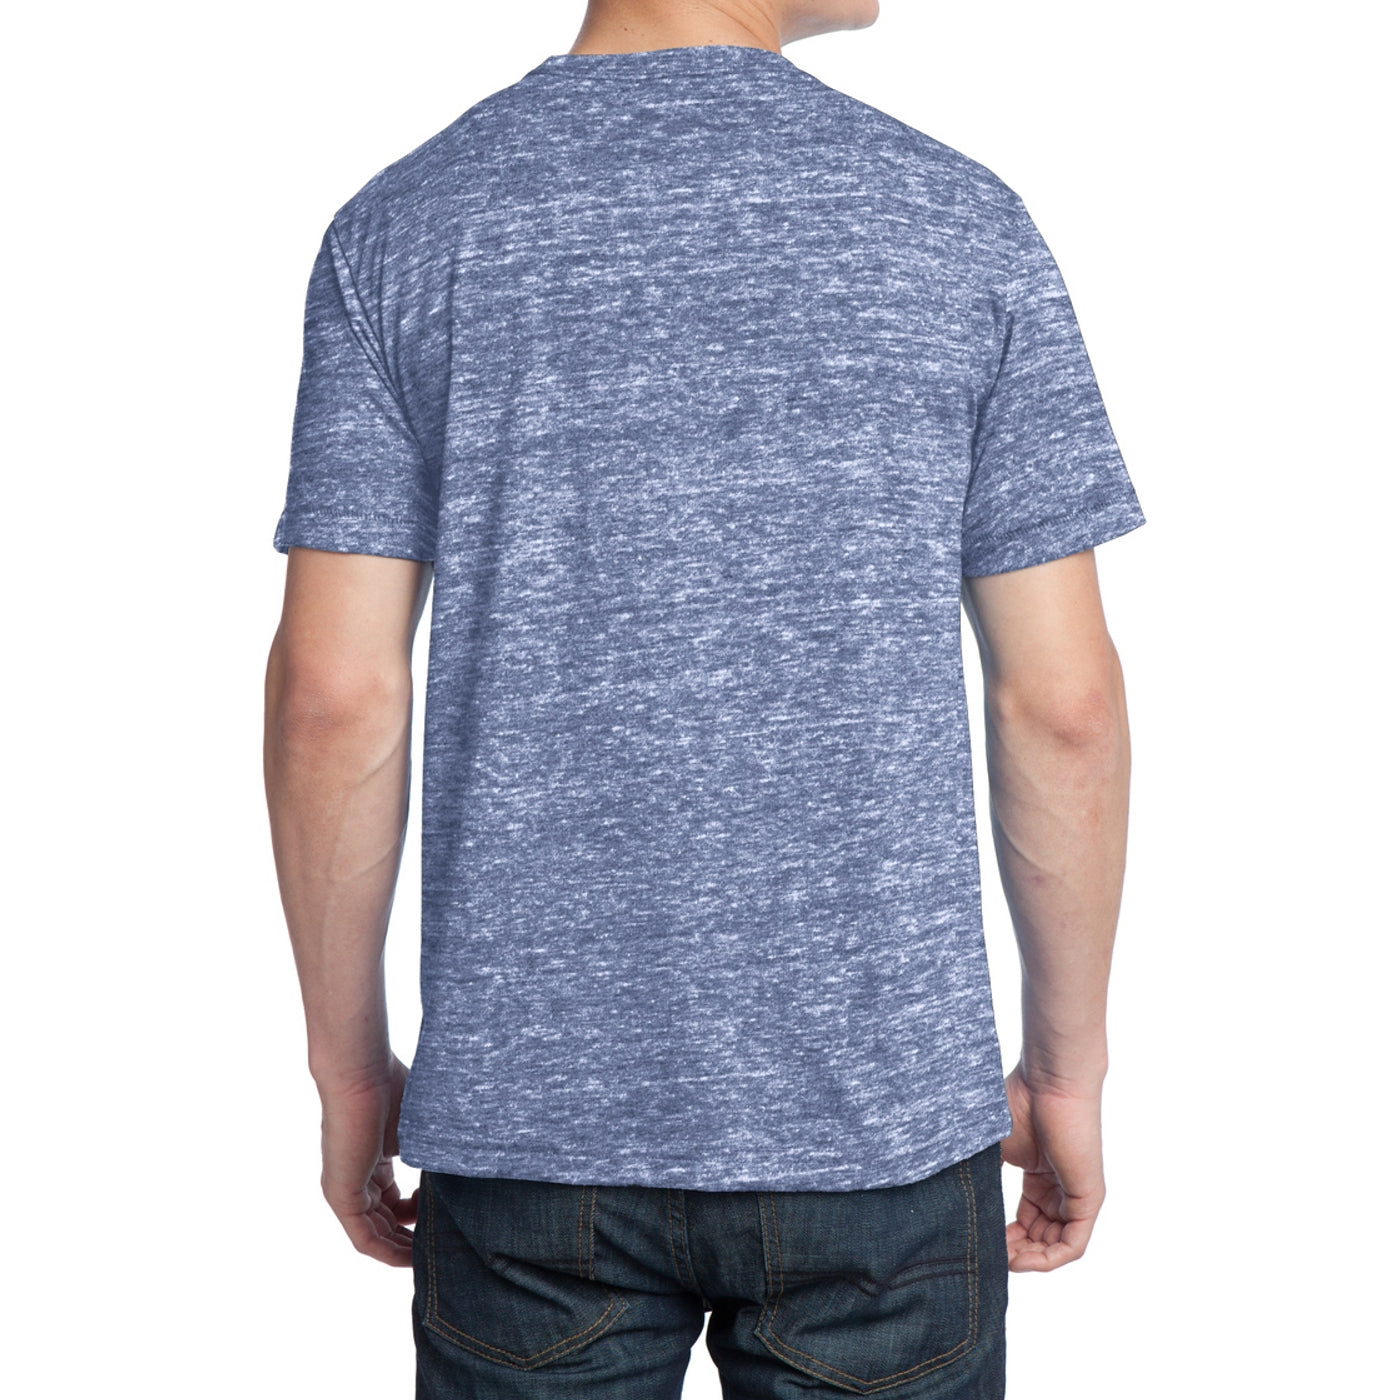 Men's Young Tri-Blend Crewneck Tee - Navy Heather